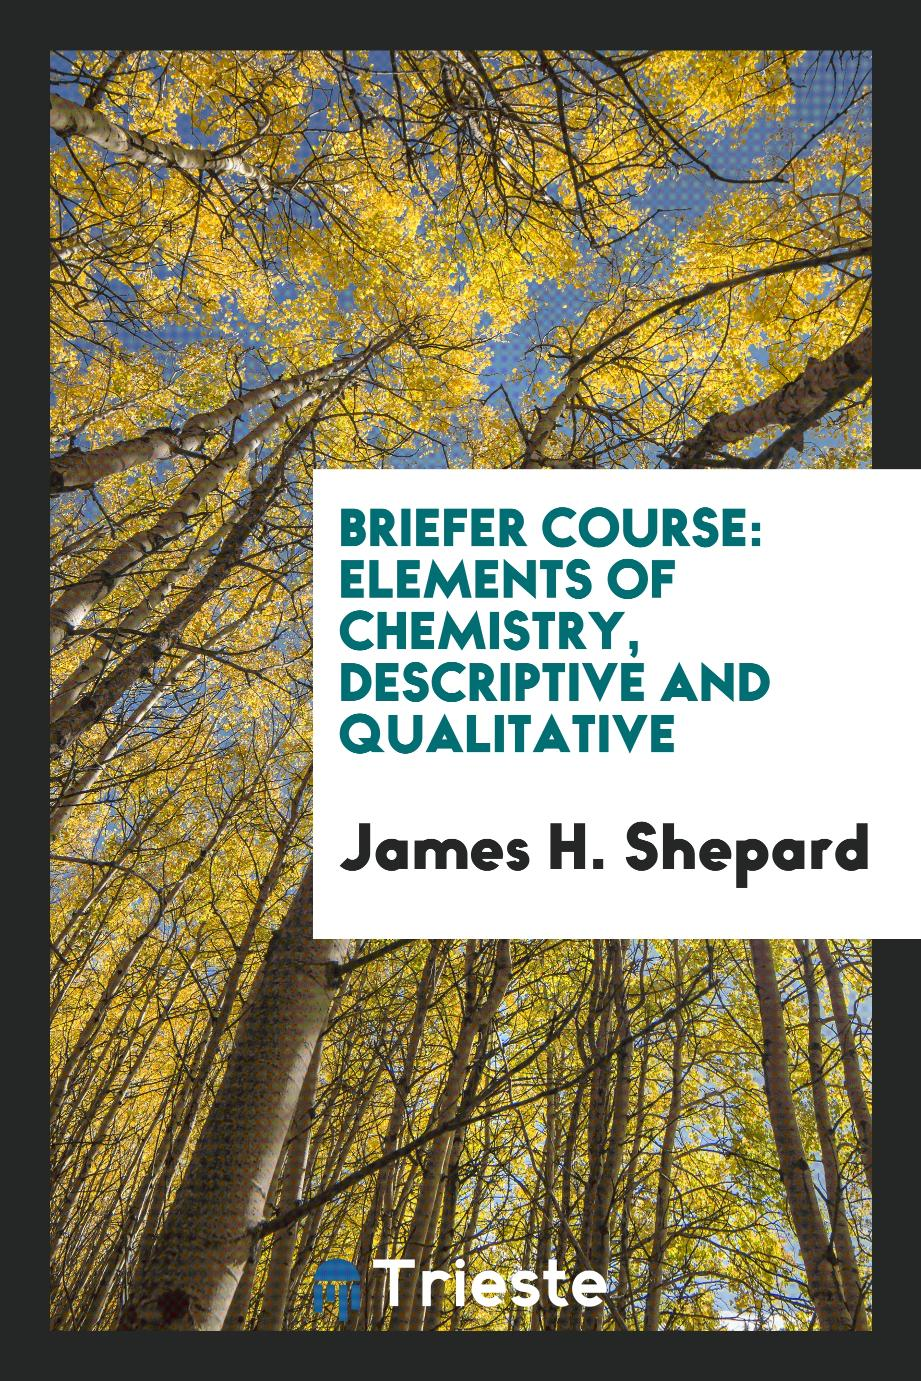 Briefer Course: Elements of Chemistry, Descriptive and Qualitative